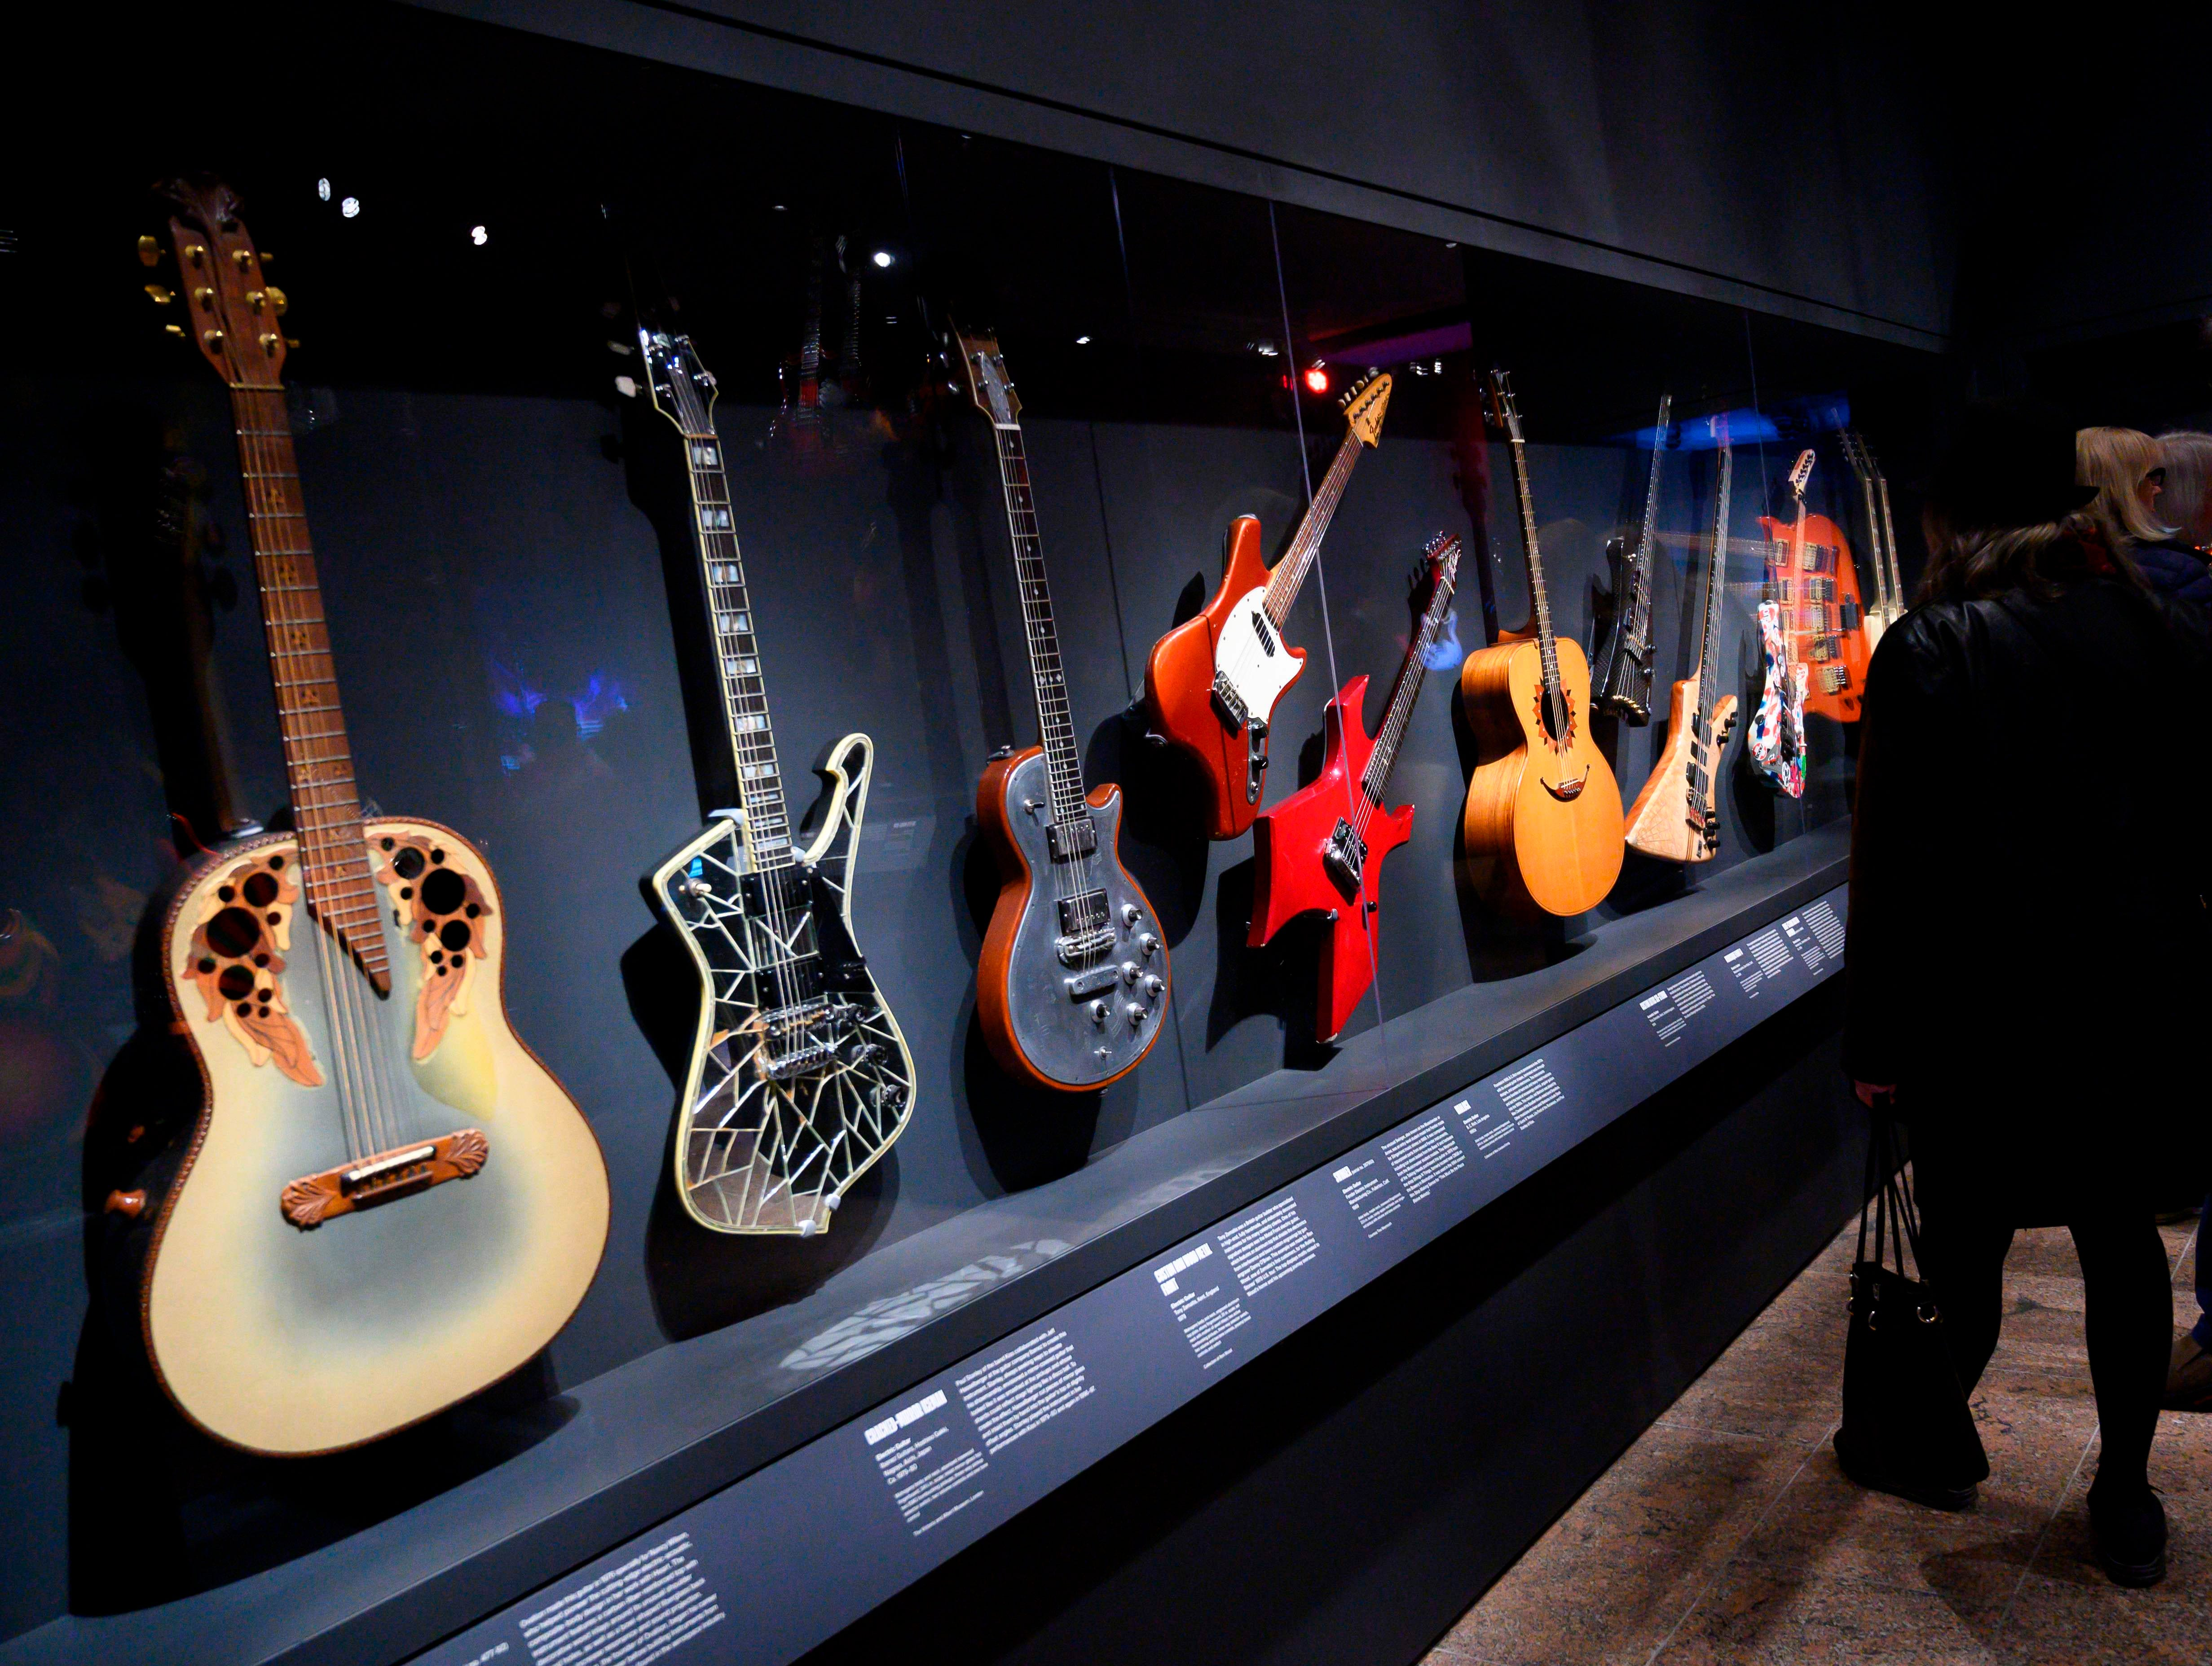 """Members of the media get a look at a group of guitars during a media preview for an exhibit called """"Play It Loud: Instruments of Rock and Roll"""" at the Metropolitan Museum of Art in New York on April 1, 2019."""